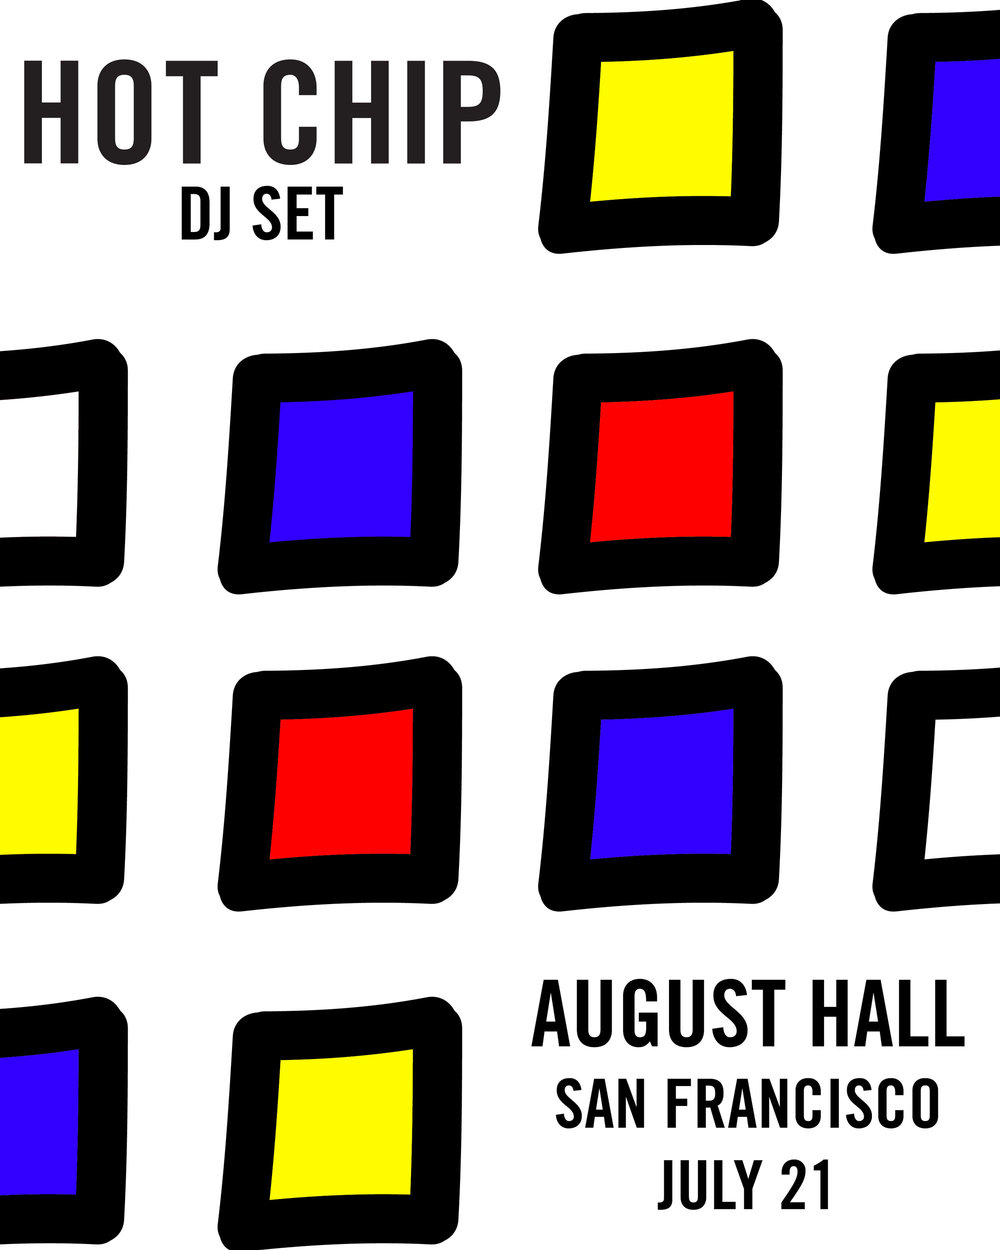 HotChip-AH-Flyer.jpg